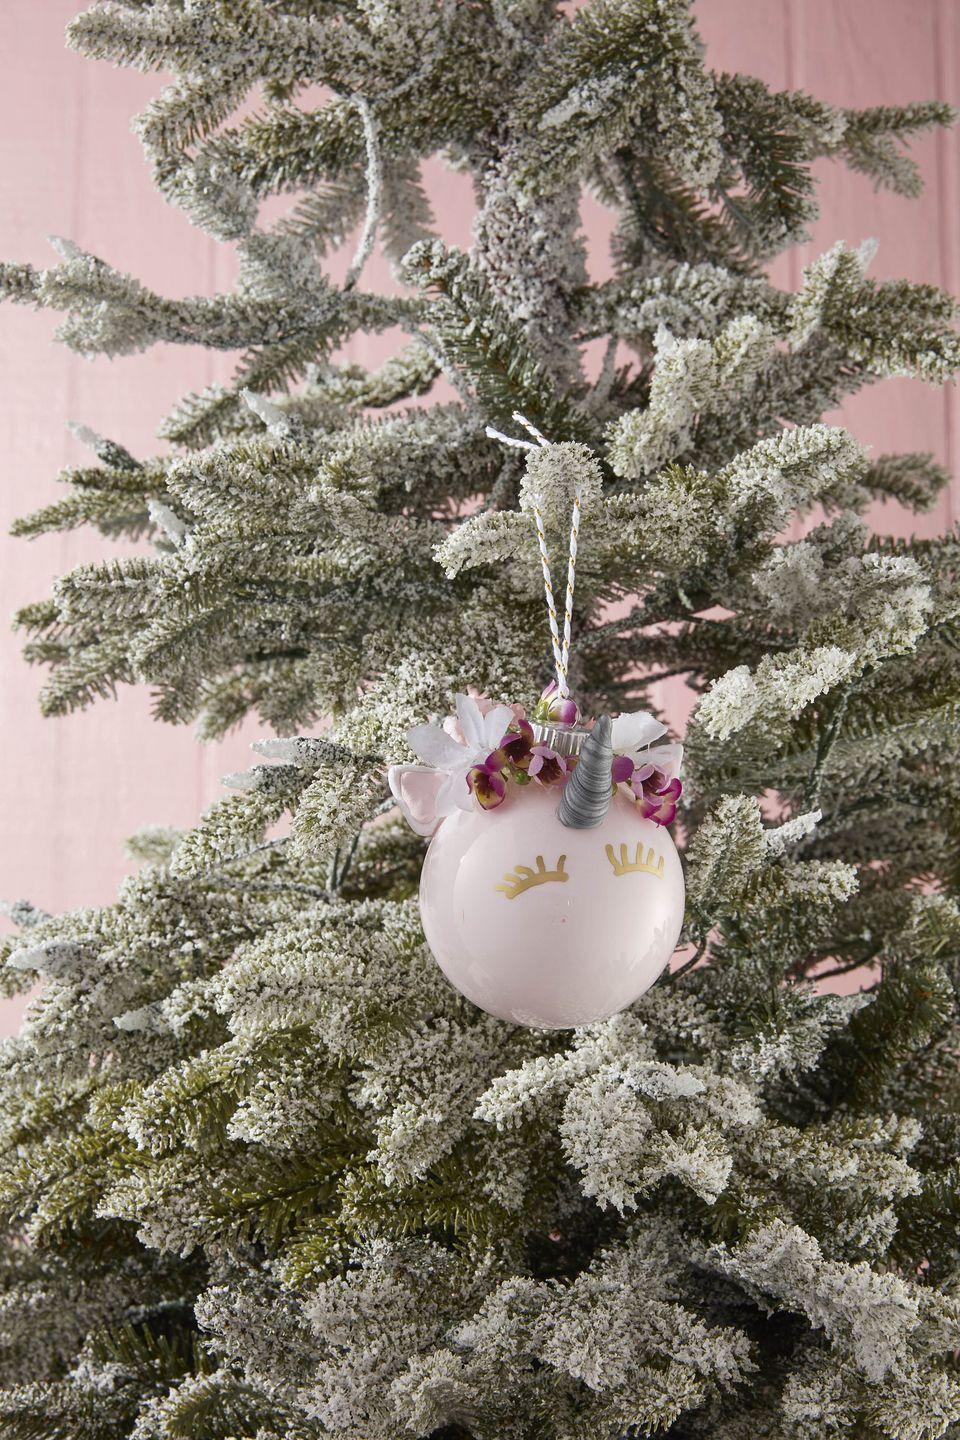 "<p>Delight the kids and grandkids with this sweet and friendly DIY unicorn ornament.</p><p><strong>To make:</strong> Remove the cap from a glass or plastic ball ornament. Lightly water down a small amount of light pink acrylic paint. Carefully pour the paint in the opening of the ornament. Rotate the ornament until the inside is fully covered with paint; pour out excess. Allow to dry then reattach cap. Press desired color sculpting clay into a silicone unicorn mold to create ears and horn; allow to dry completely. Attach a mini unicorn horn, ears, and fake flowers with hot glue. Draw eyelashes just below the horn with a gold paint pen.</p><p><a class=""link rapid-noclick-resp"" href=""https://www.amazon.com/Decorating-Fondant-Icing-Silicone-Mould/dp/B07G4CY7M6/ref=sr_1_6?tag=syn-yahoo-20&ascsubtag=%5Bartid%7C10050.g.1070%5Bsrc%7Cyahoo-us"" rel=""nofollow noopener"" target=""_blank"" data-ylk=""slk:SHOP UNICORN MOLD"">SHOP UNICORN MOLD</a></p>"